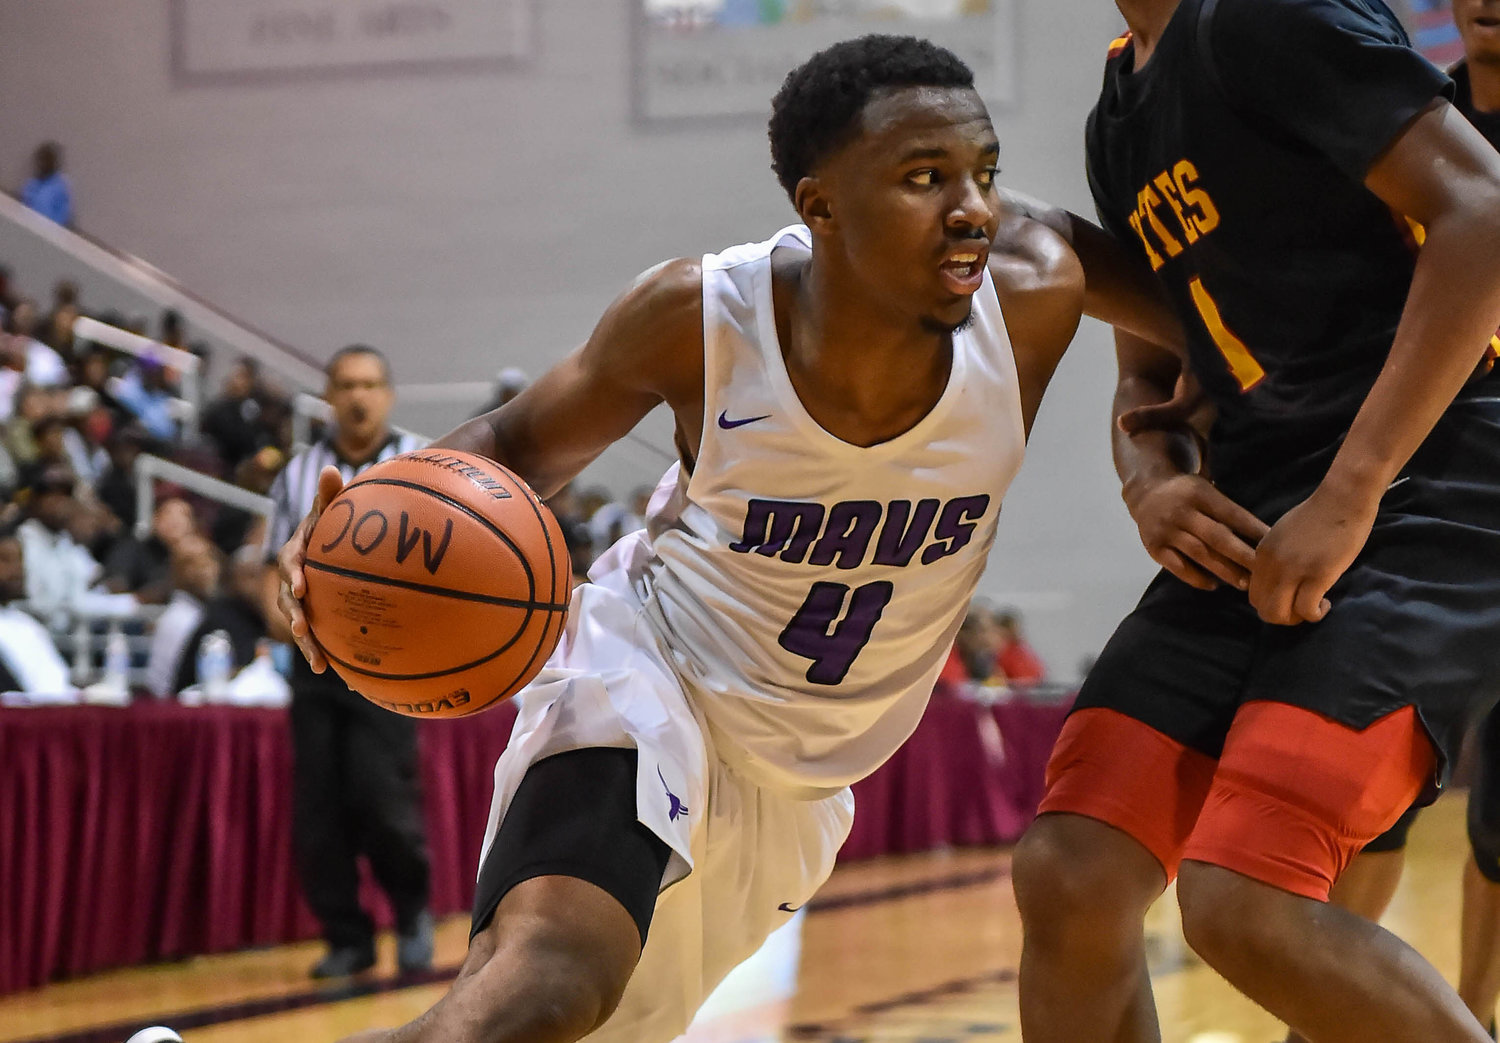 Morton Ranch senior guard L.J. Cryer was named to the Texas Association of Basketball Coaches' Class 6A all-state team this week after producing one of the best seasons in Texas high school basketball history, scoring 1,164 points.